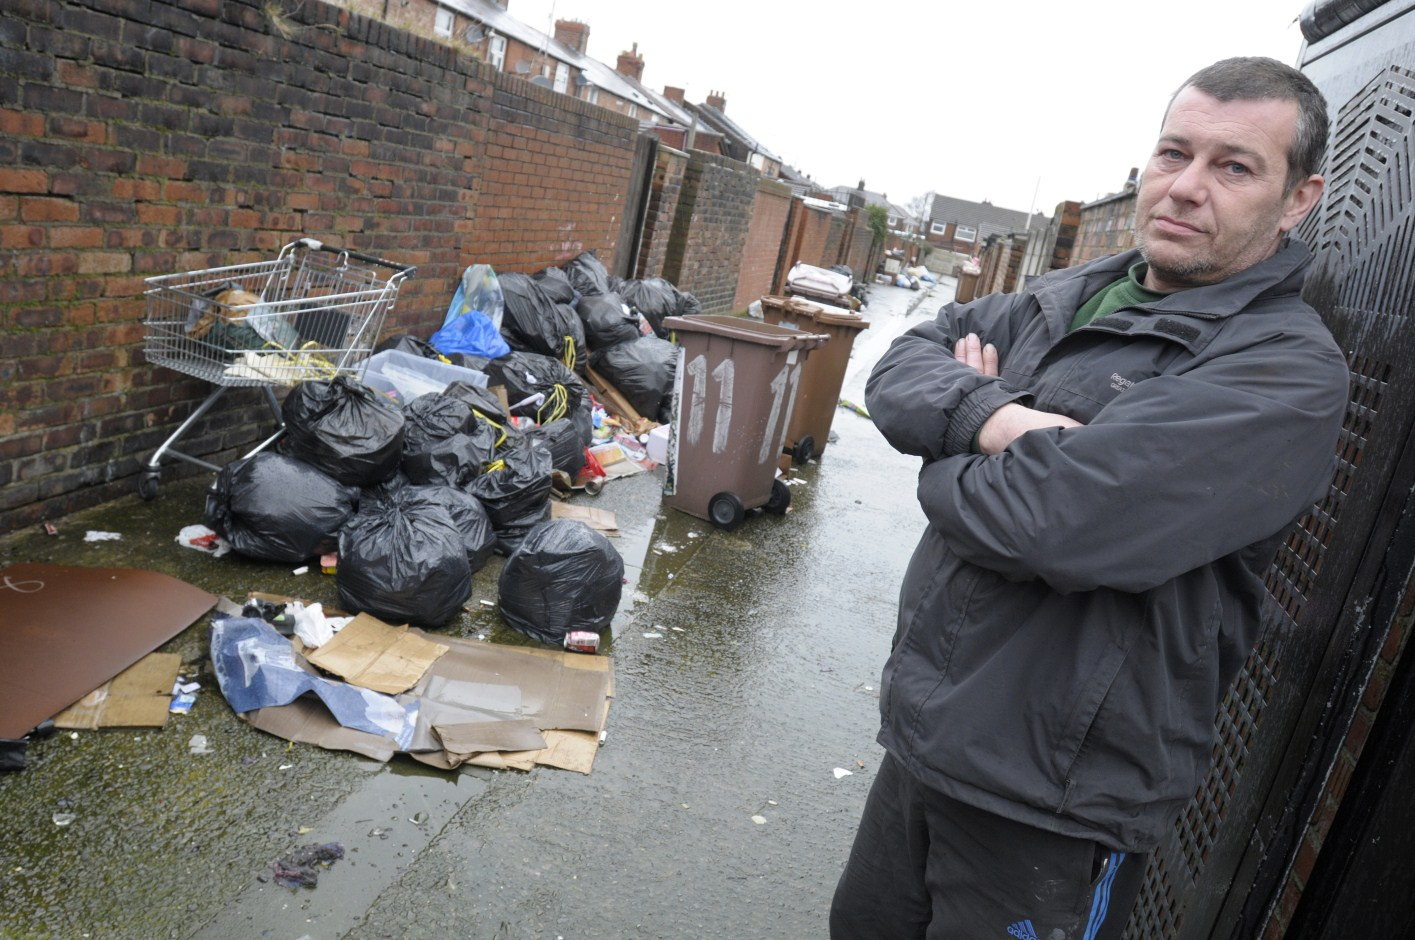 Builder Steve Davies was overcome by stench from rubbish.